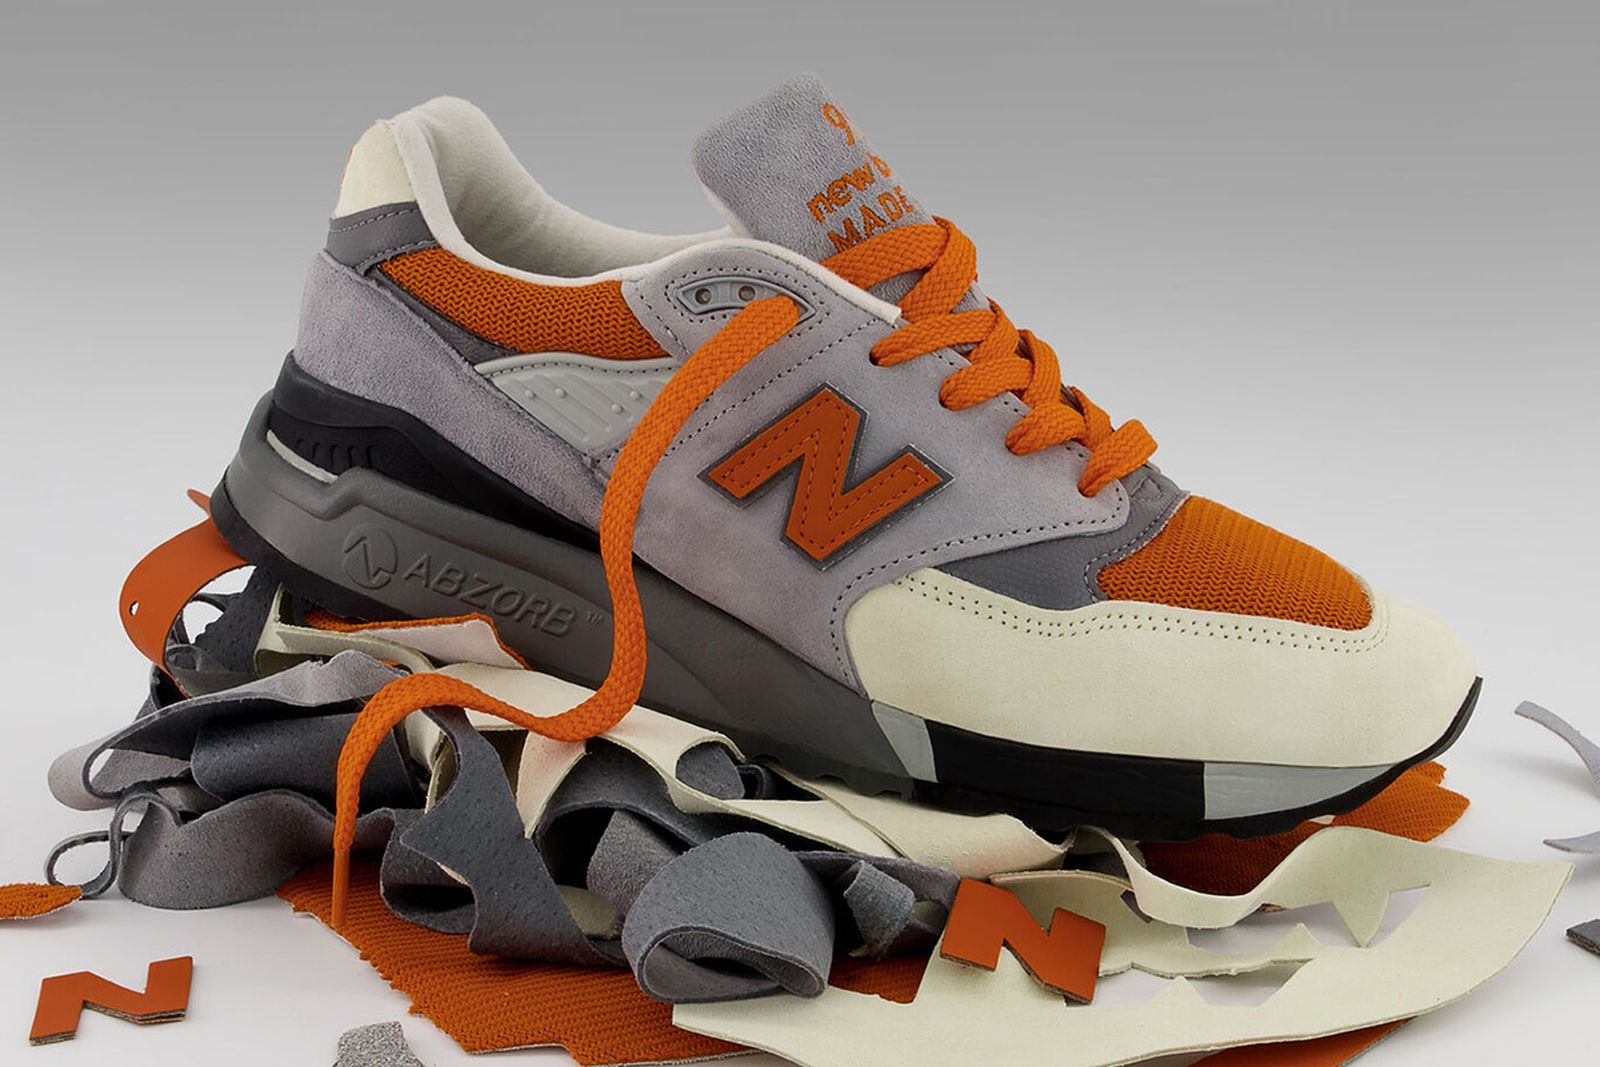 new-balance-998-made-responsibly-release-info-0